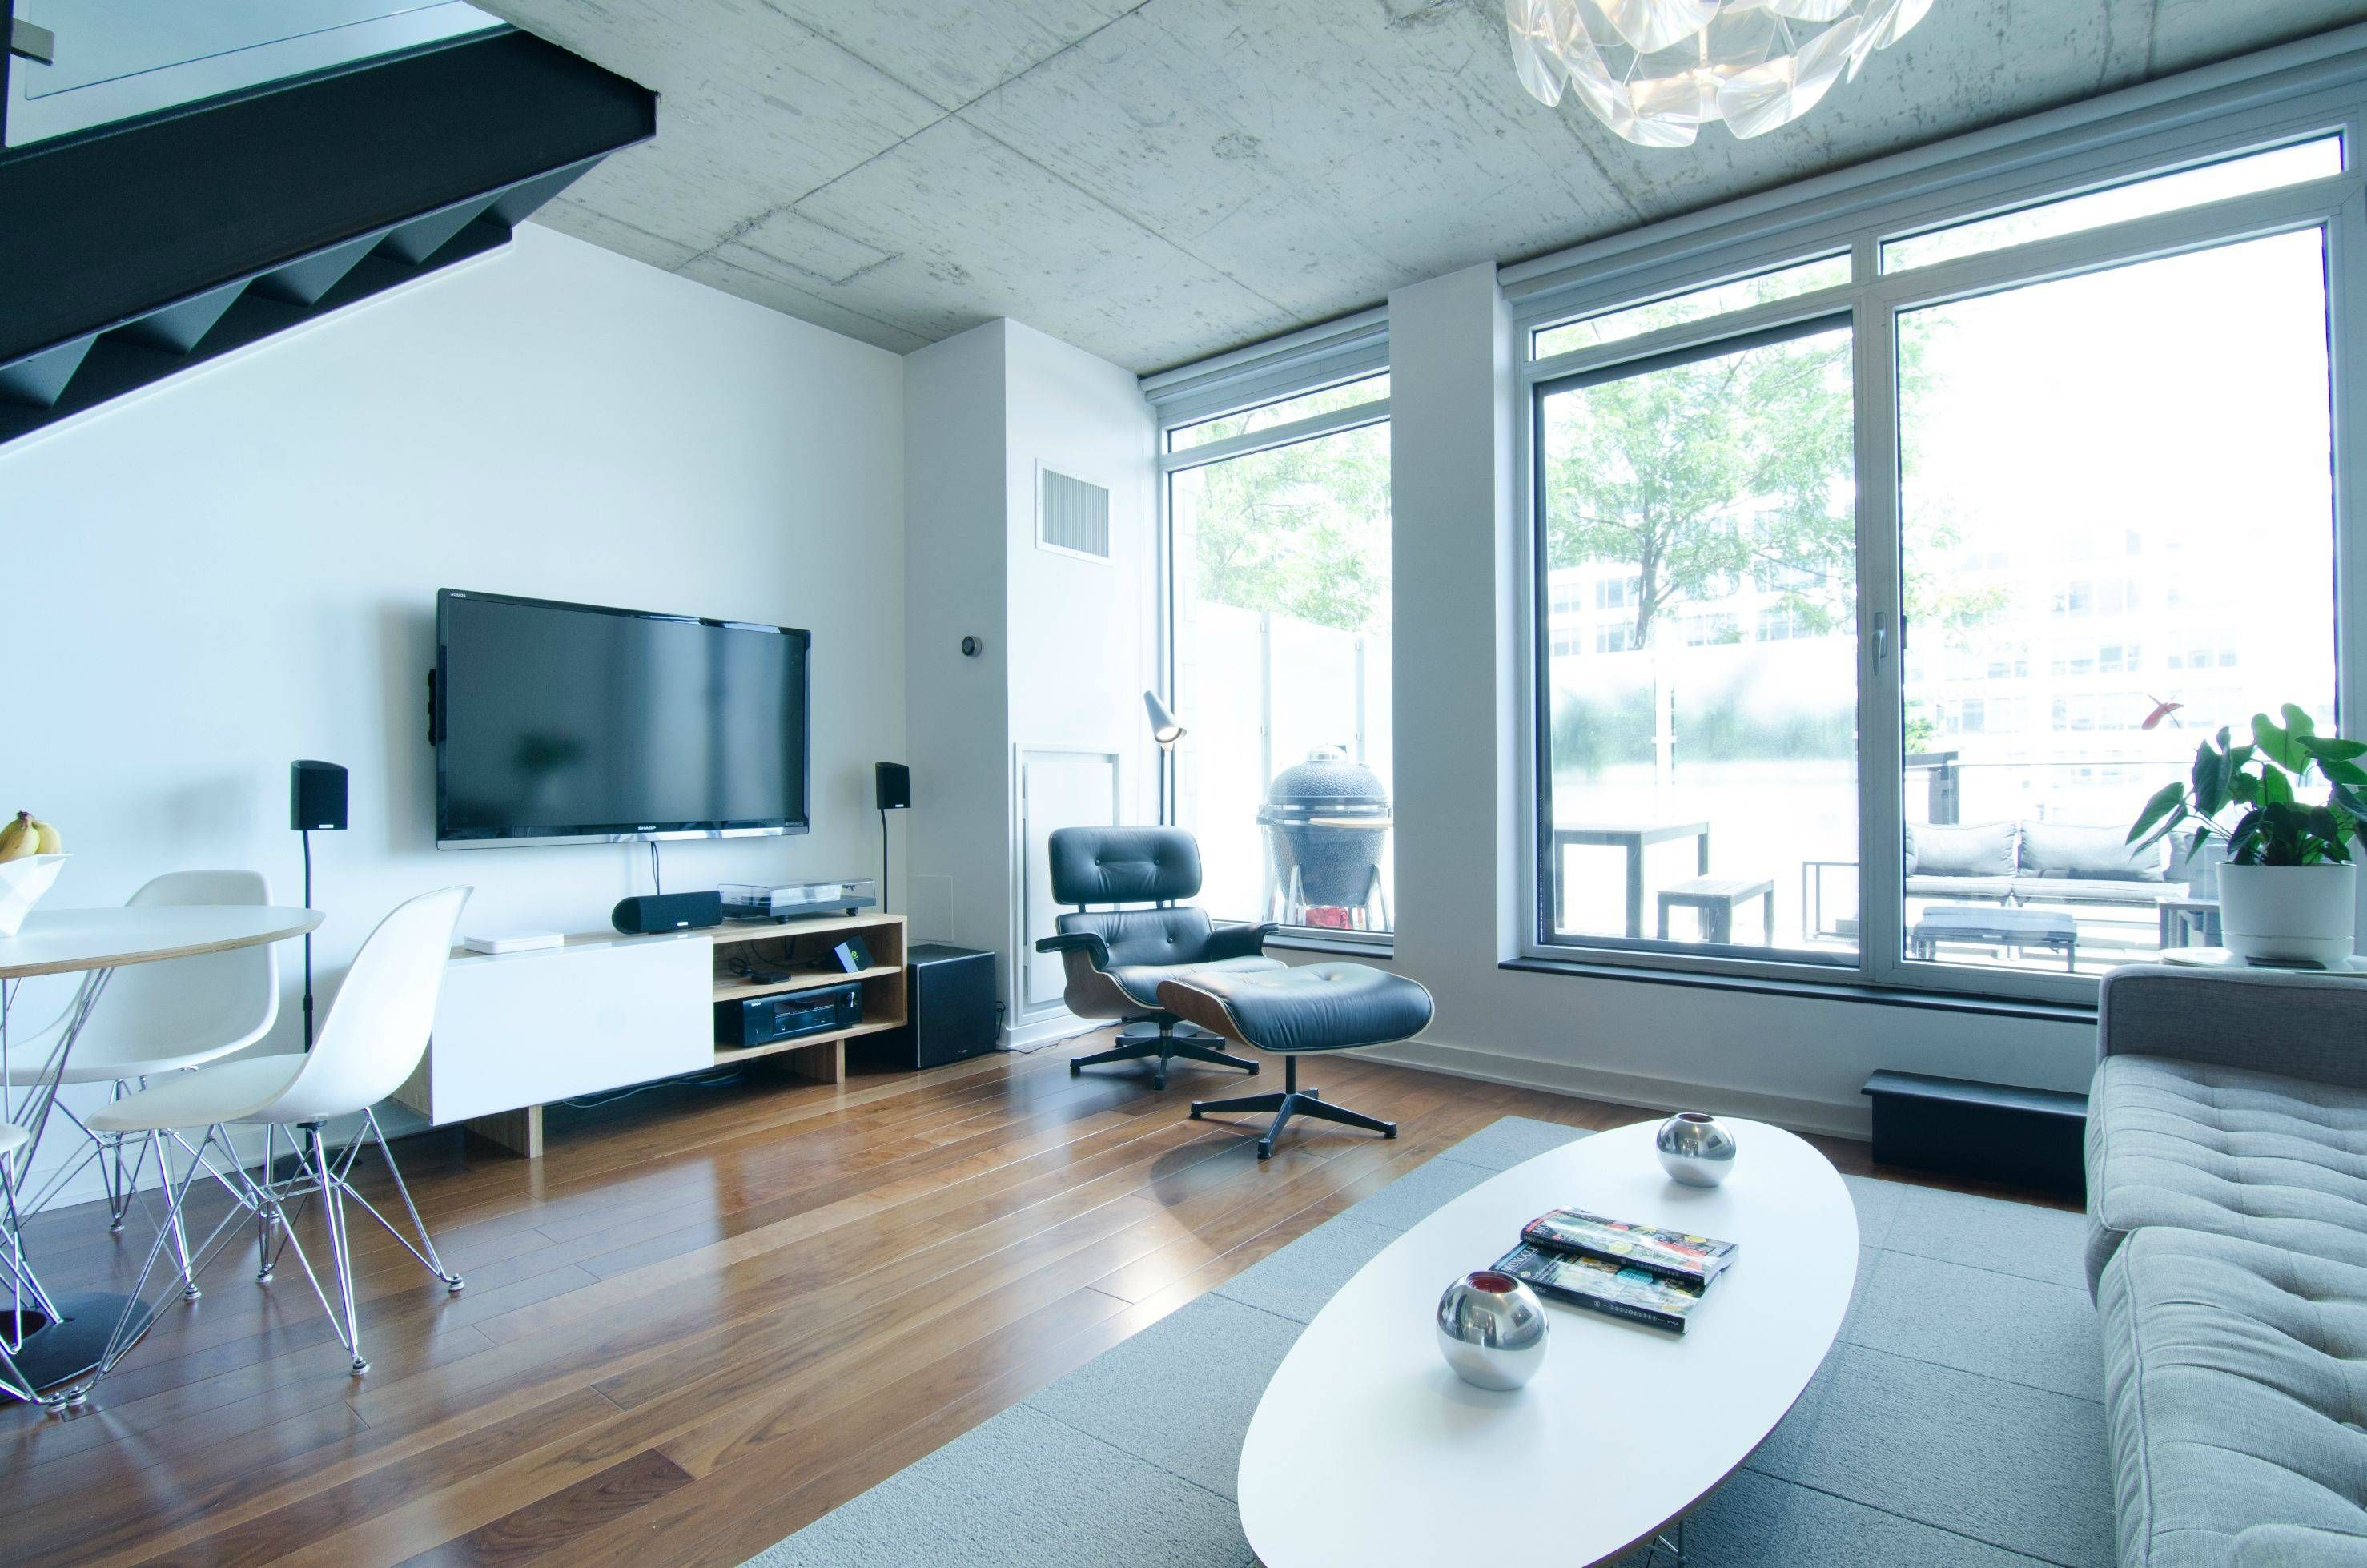 Contemporary Luxury White Apartment Interior Design With Modern Furniture Decorating Ideas Captivating As A Convenient Unit Entertainment Center